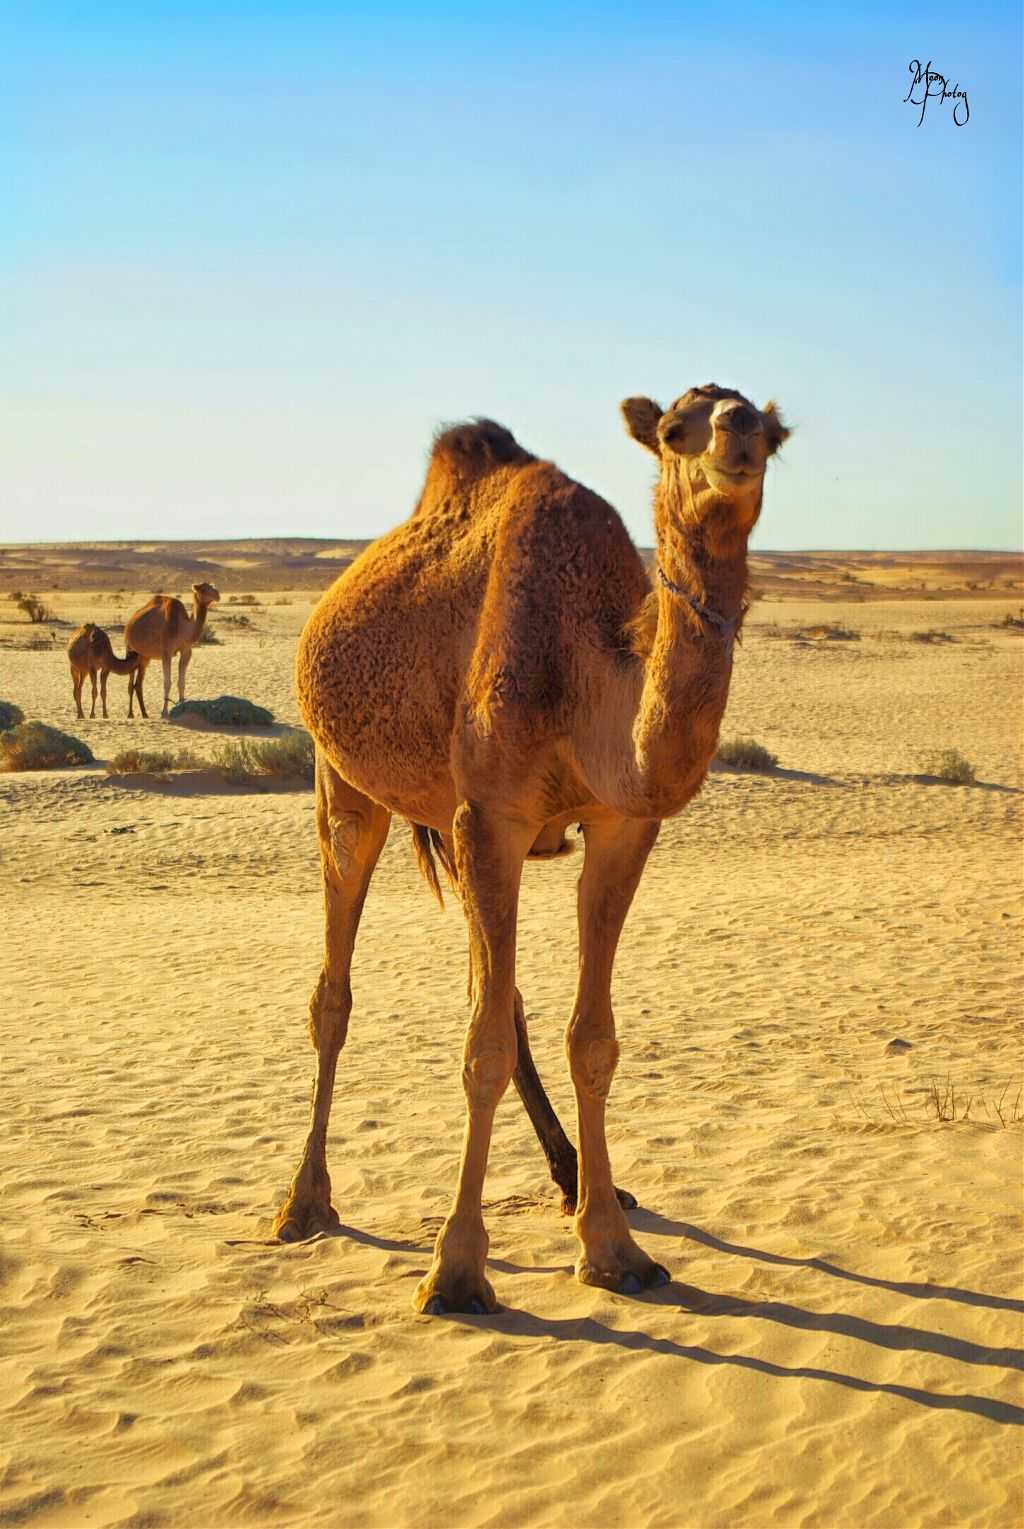 #camel #sahara #simplicity #oldlife #animal #animals #photography